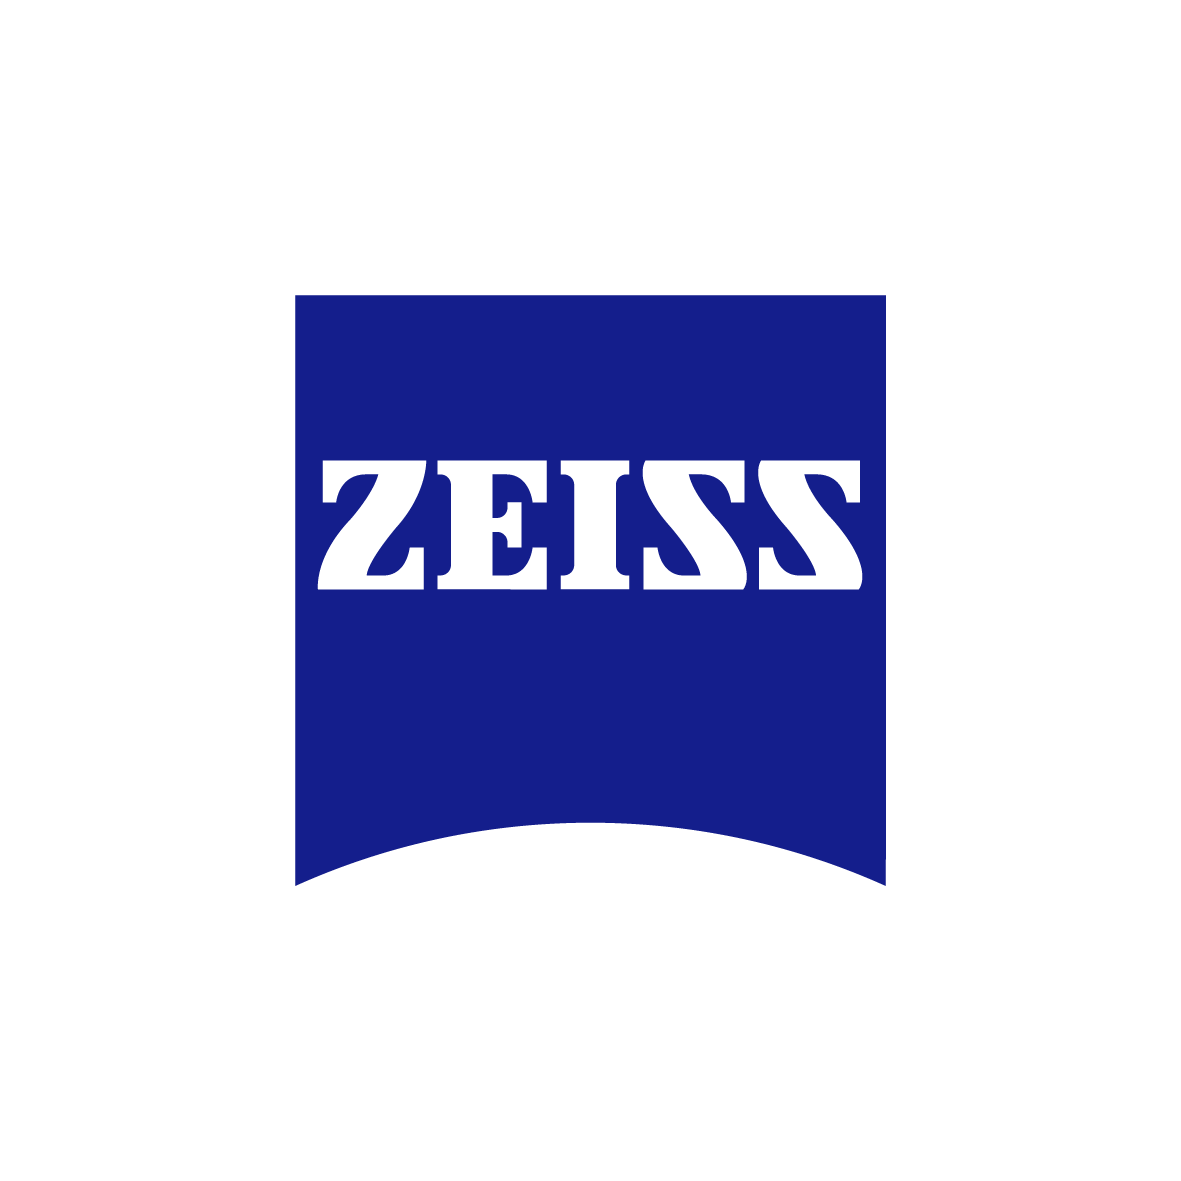 Carl Zeiss Digital Innovation GmbH